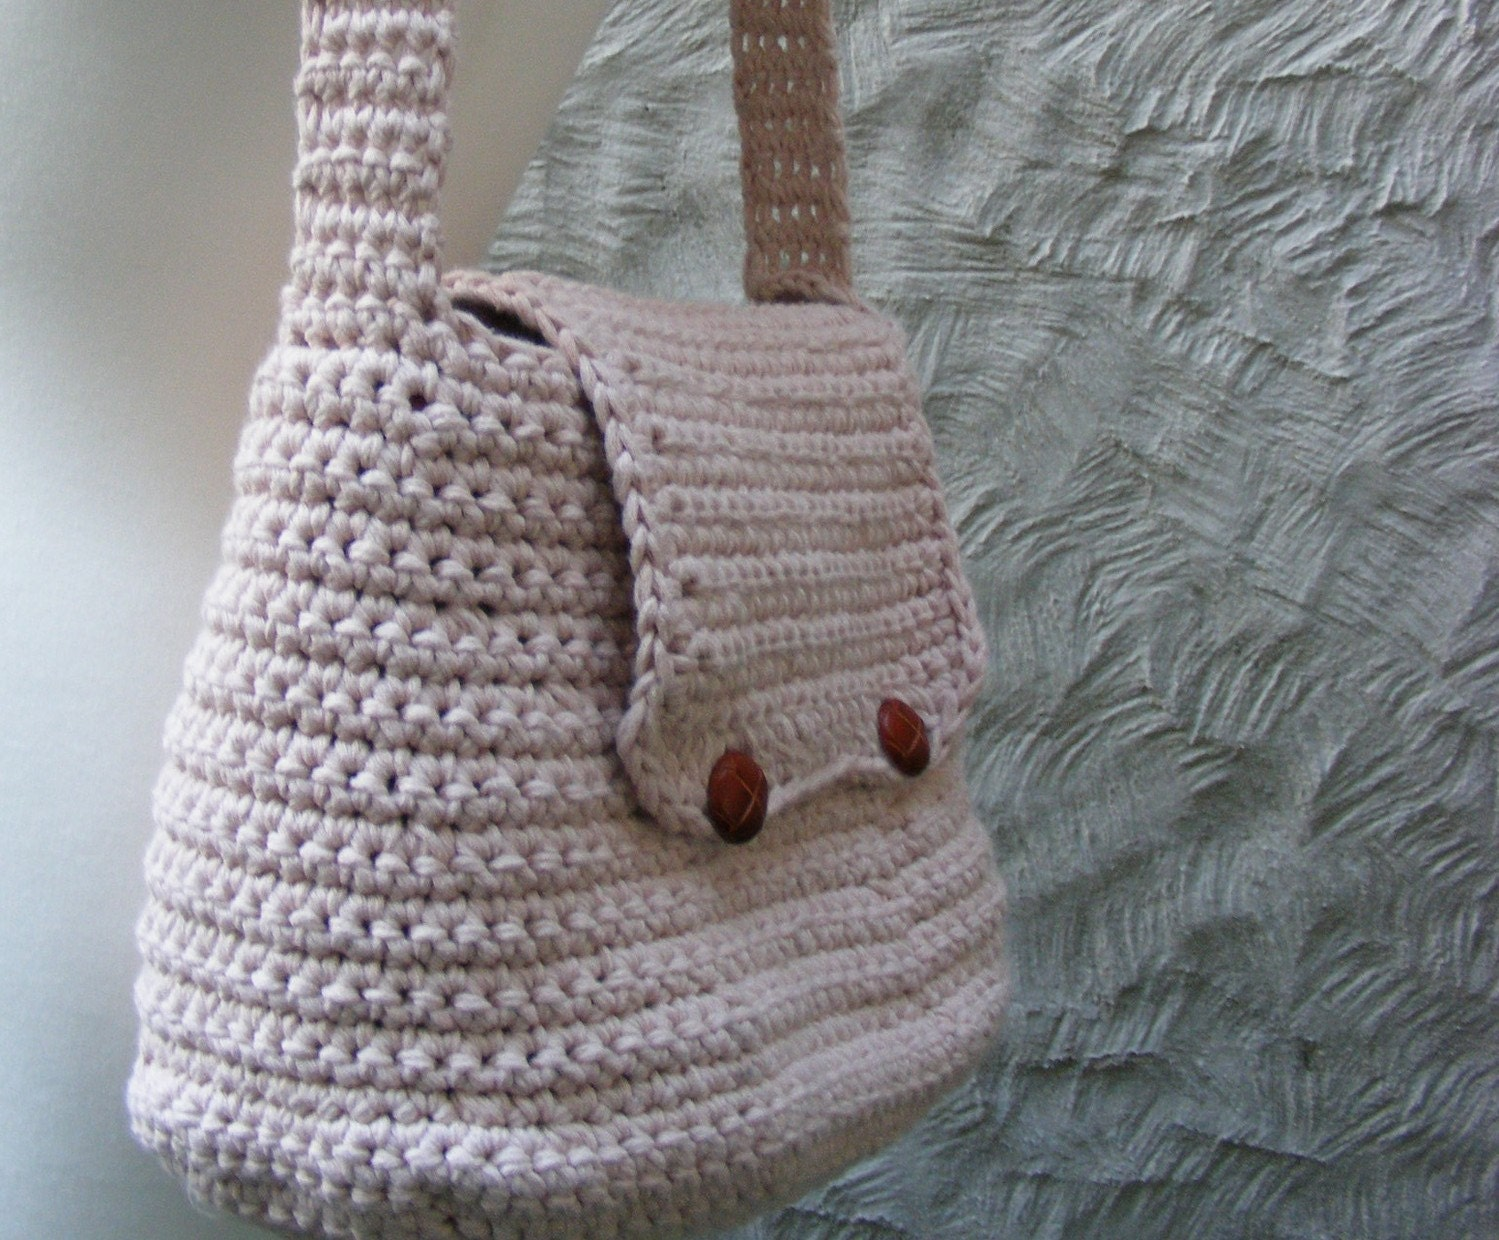 Crochet Bag Pattern Easy : EASY CROCHET PURSE PATTERNS How To Crochet